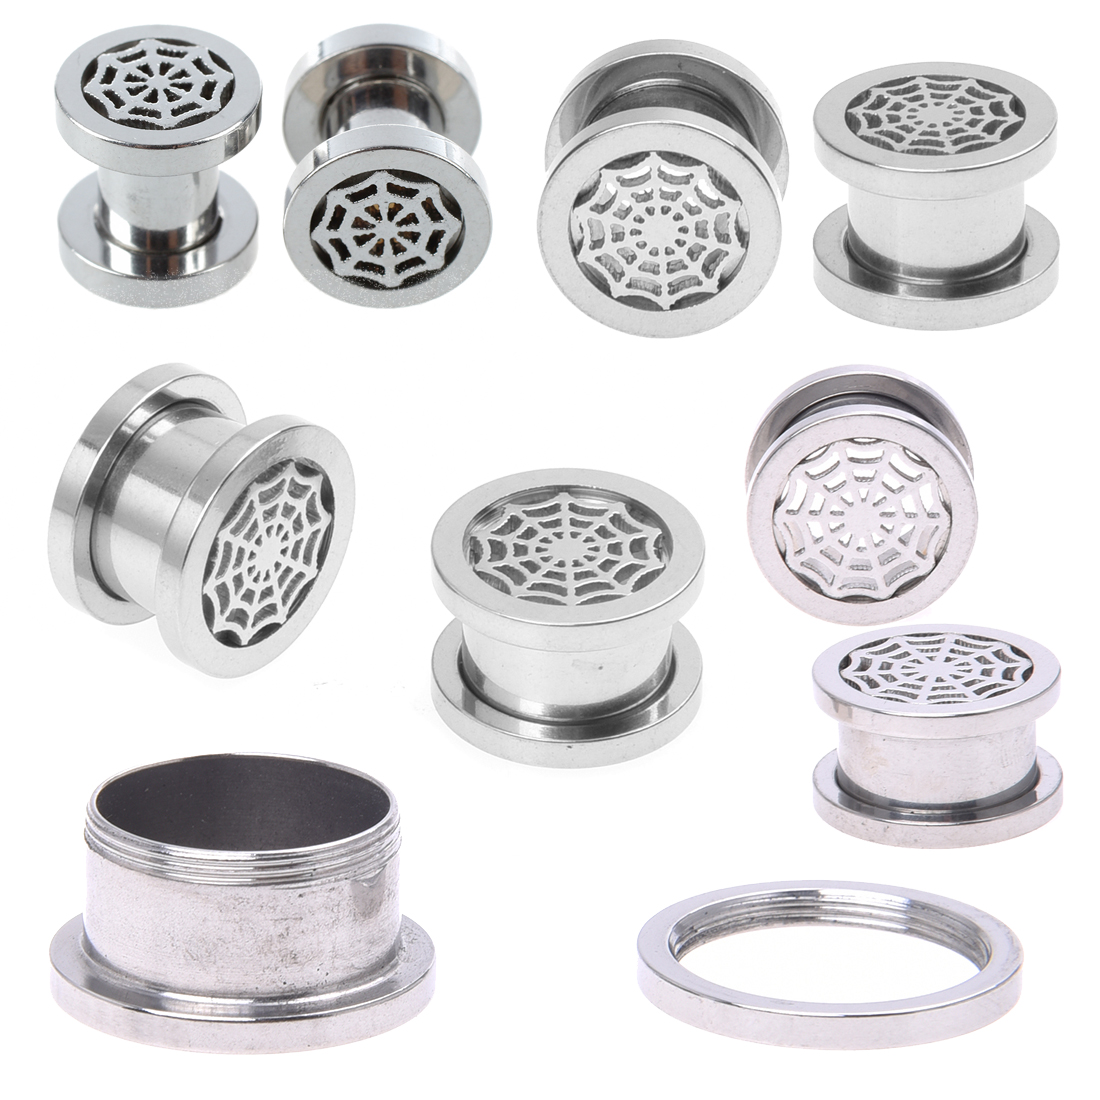 Spider-web-Screw-Fit-Steel-Ear-Plugs-Gauges-Ring-TUNNEL-Piercing-Jewelry-P2E3